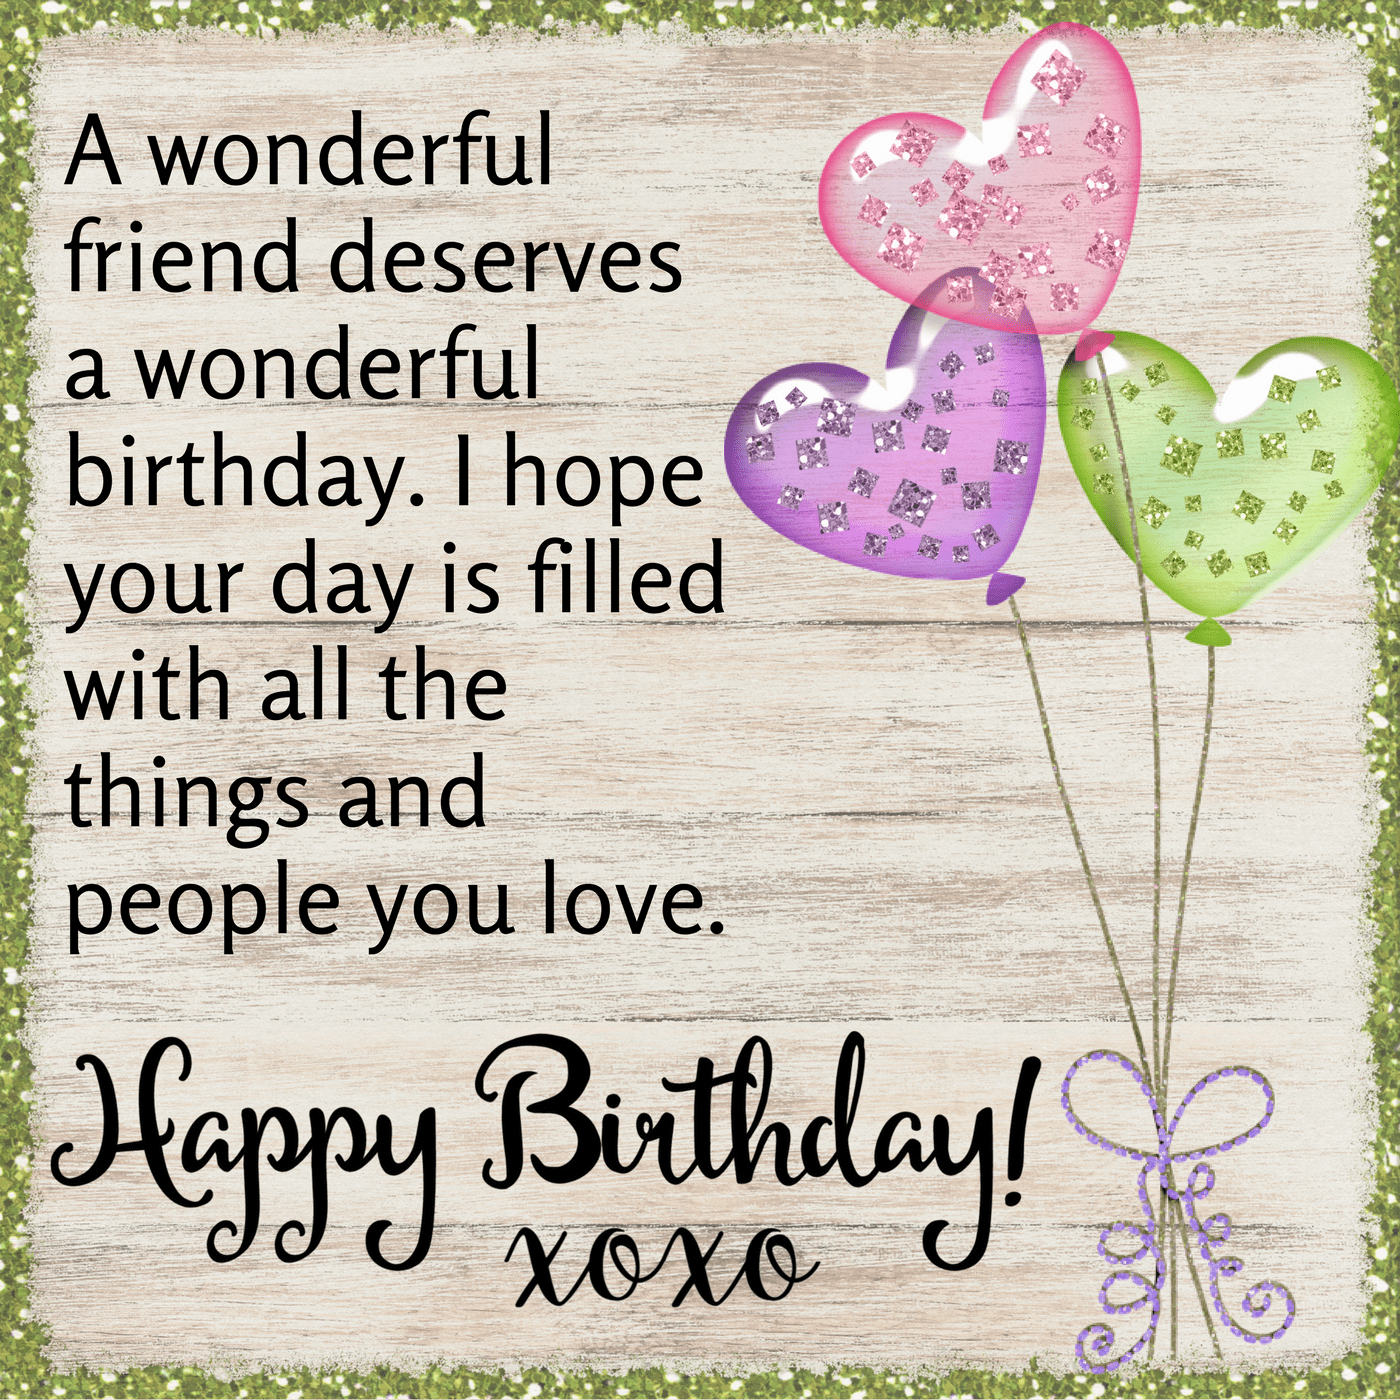 Simple Birthday Wishes for Friend